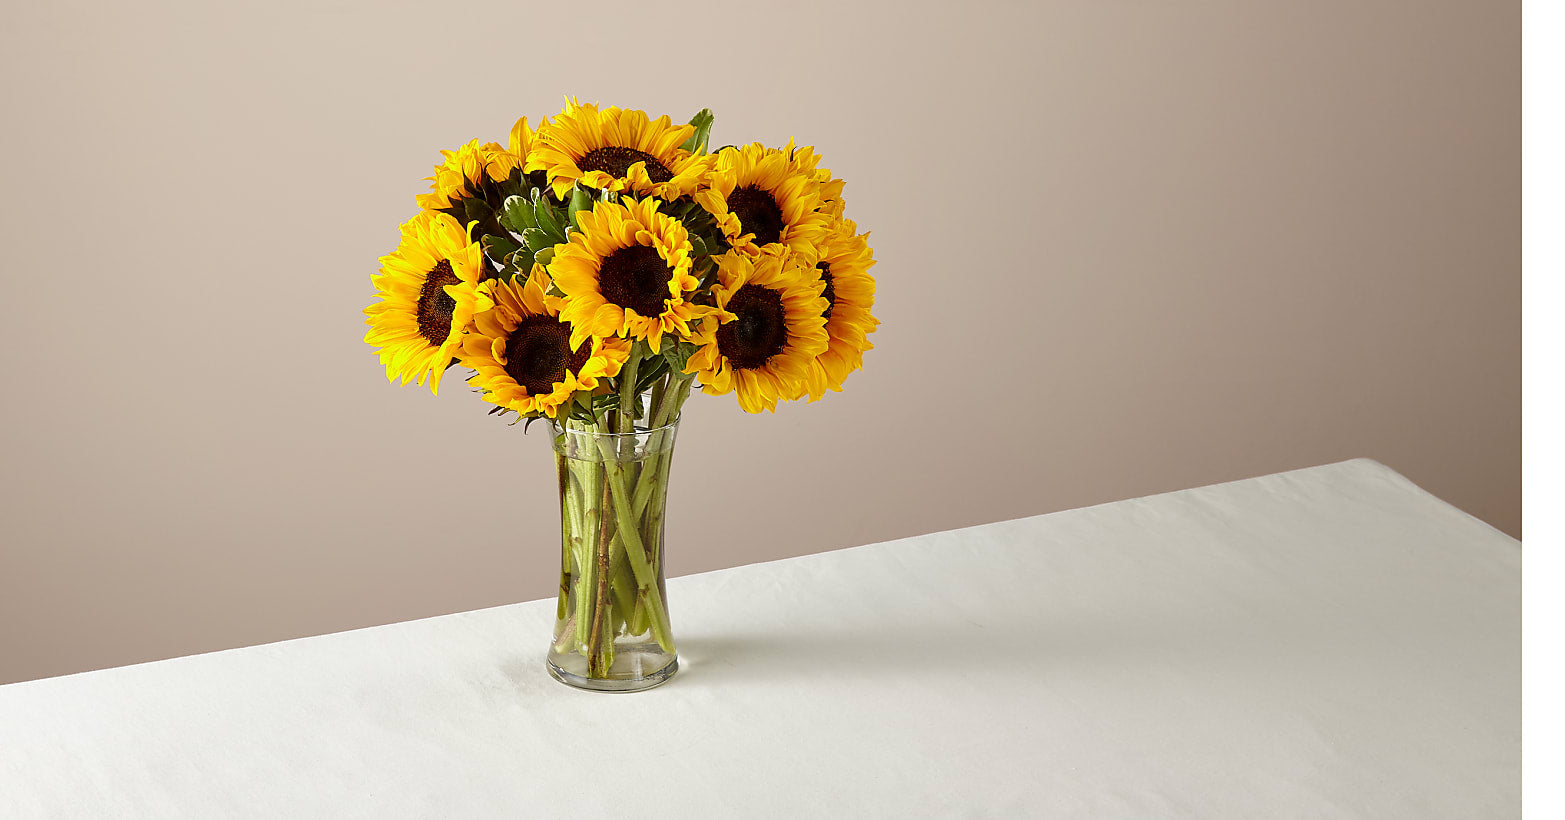 Endless Summer Sunflower Bouquet - Image 1 Of 4